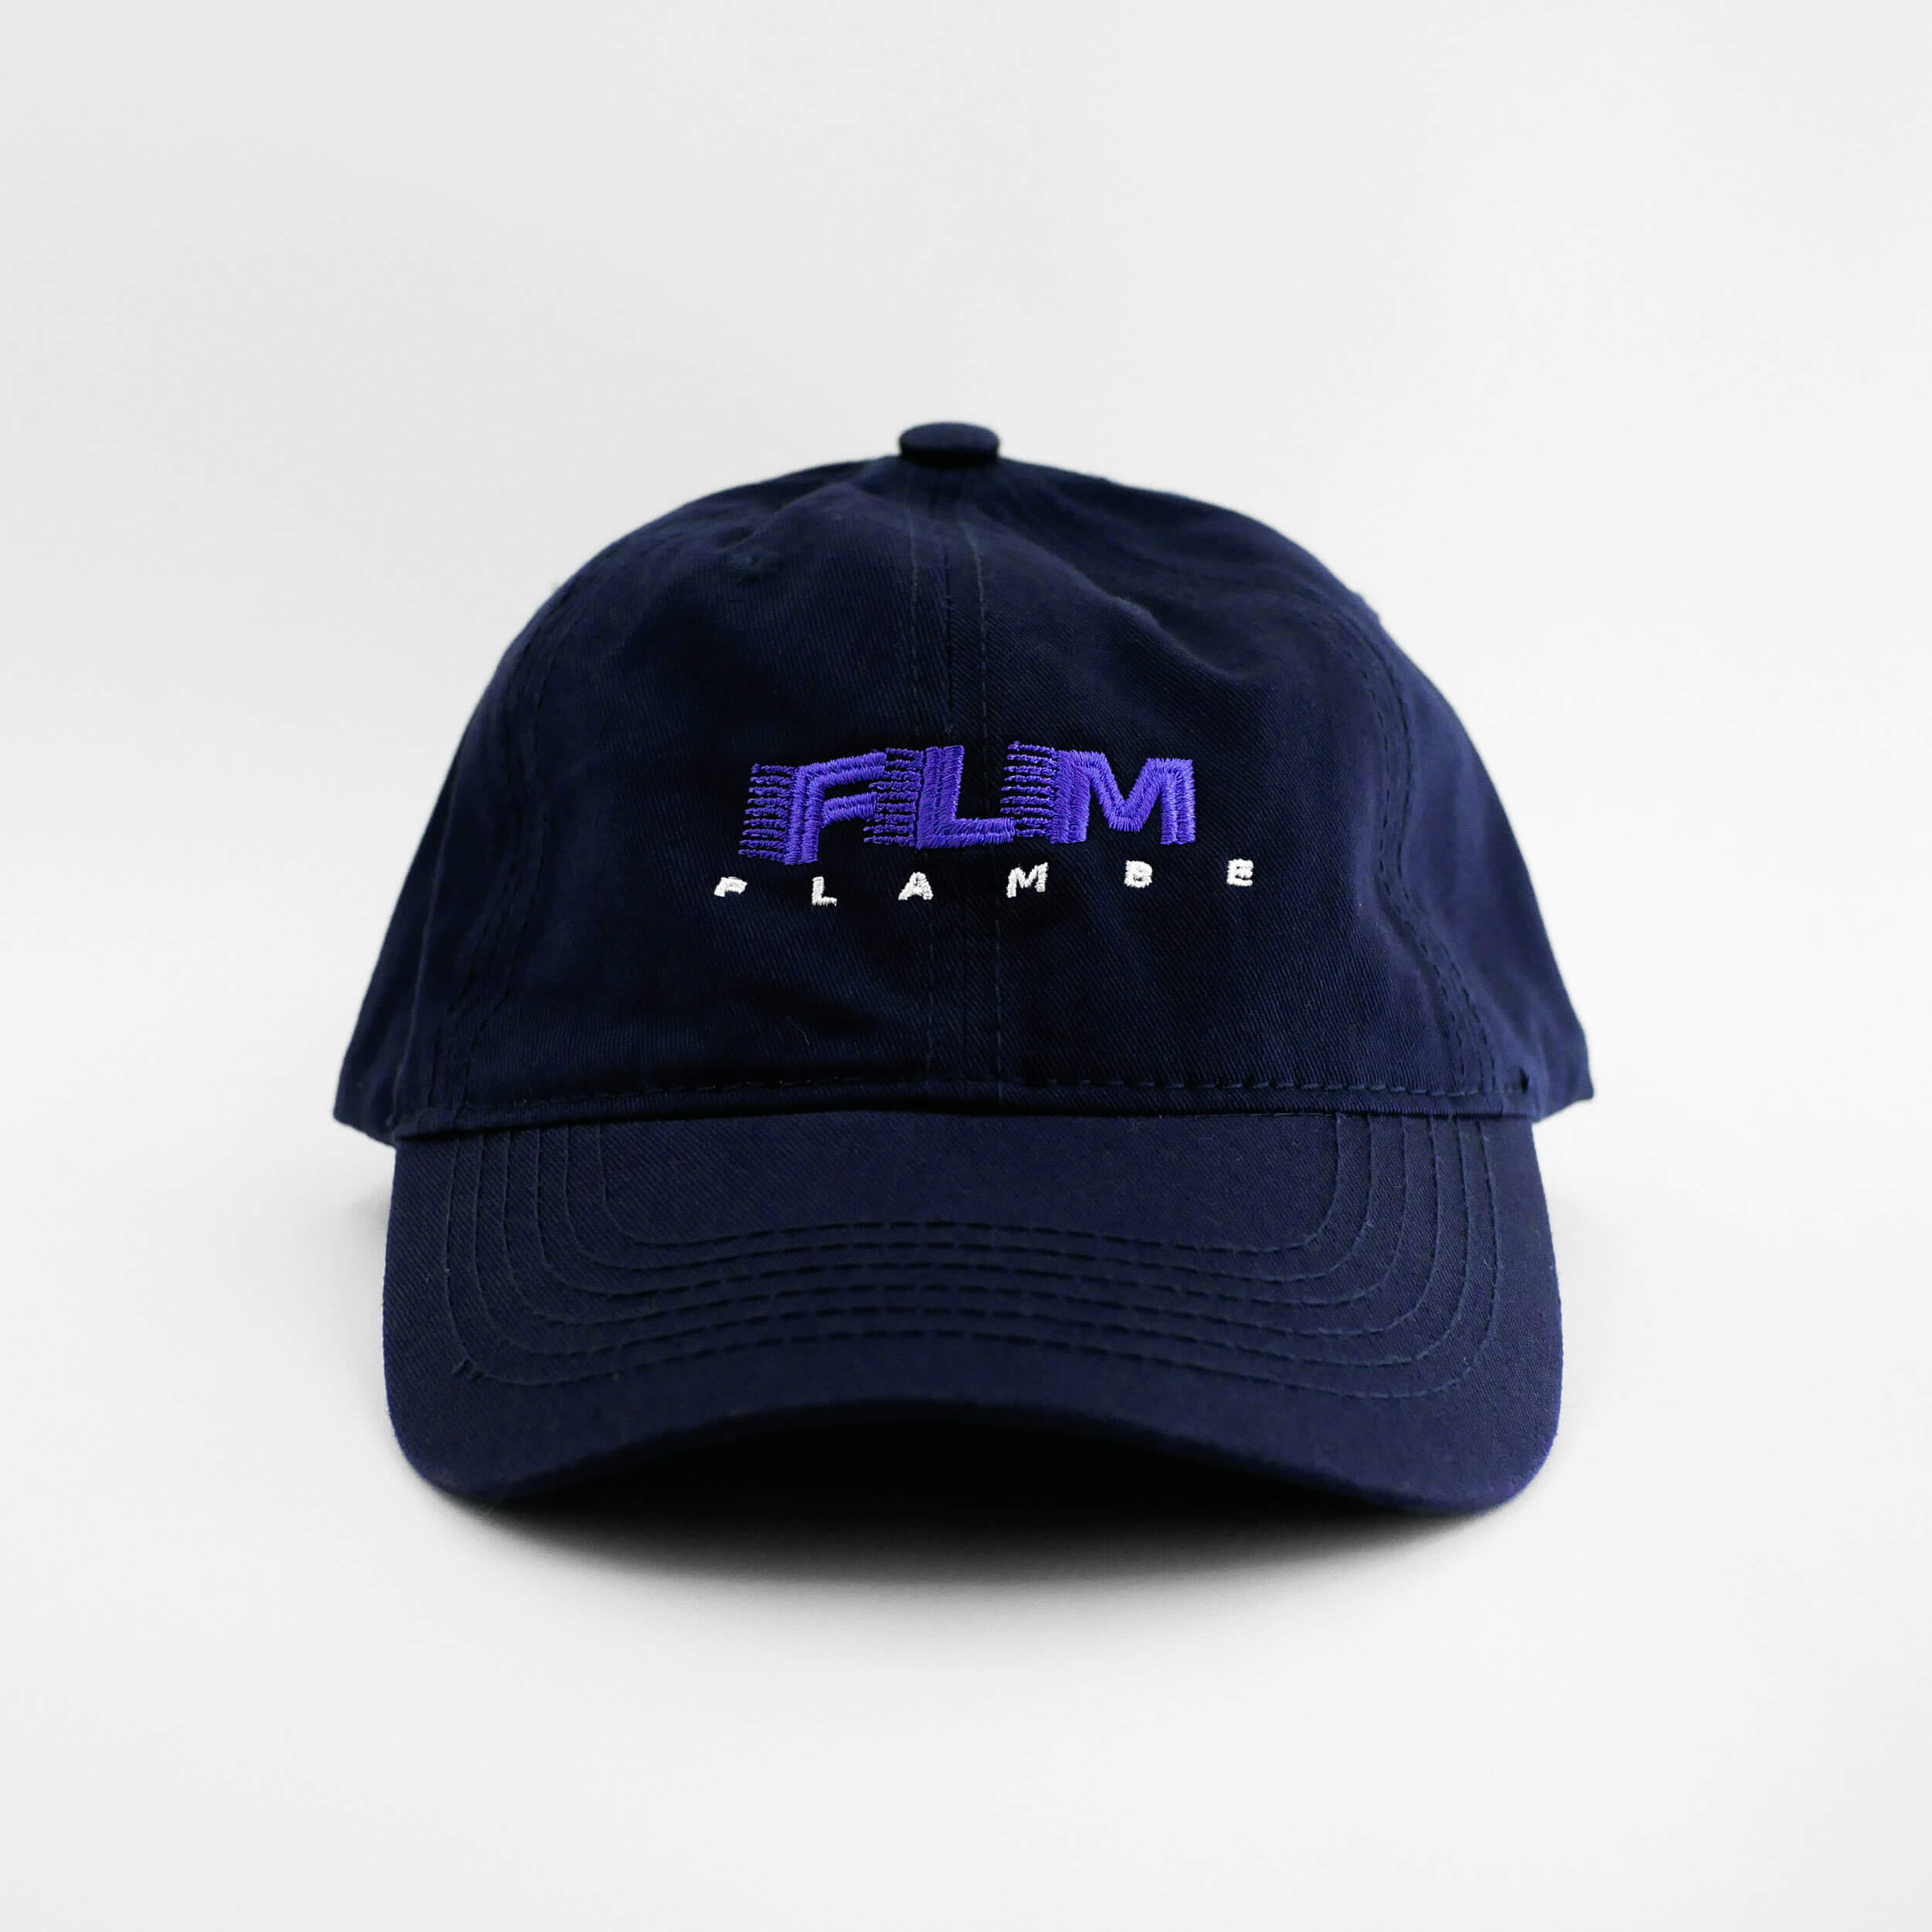 Front view of the embroidered 'FLAMBE' navy blue hat from PHOSIS Clothing